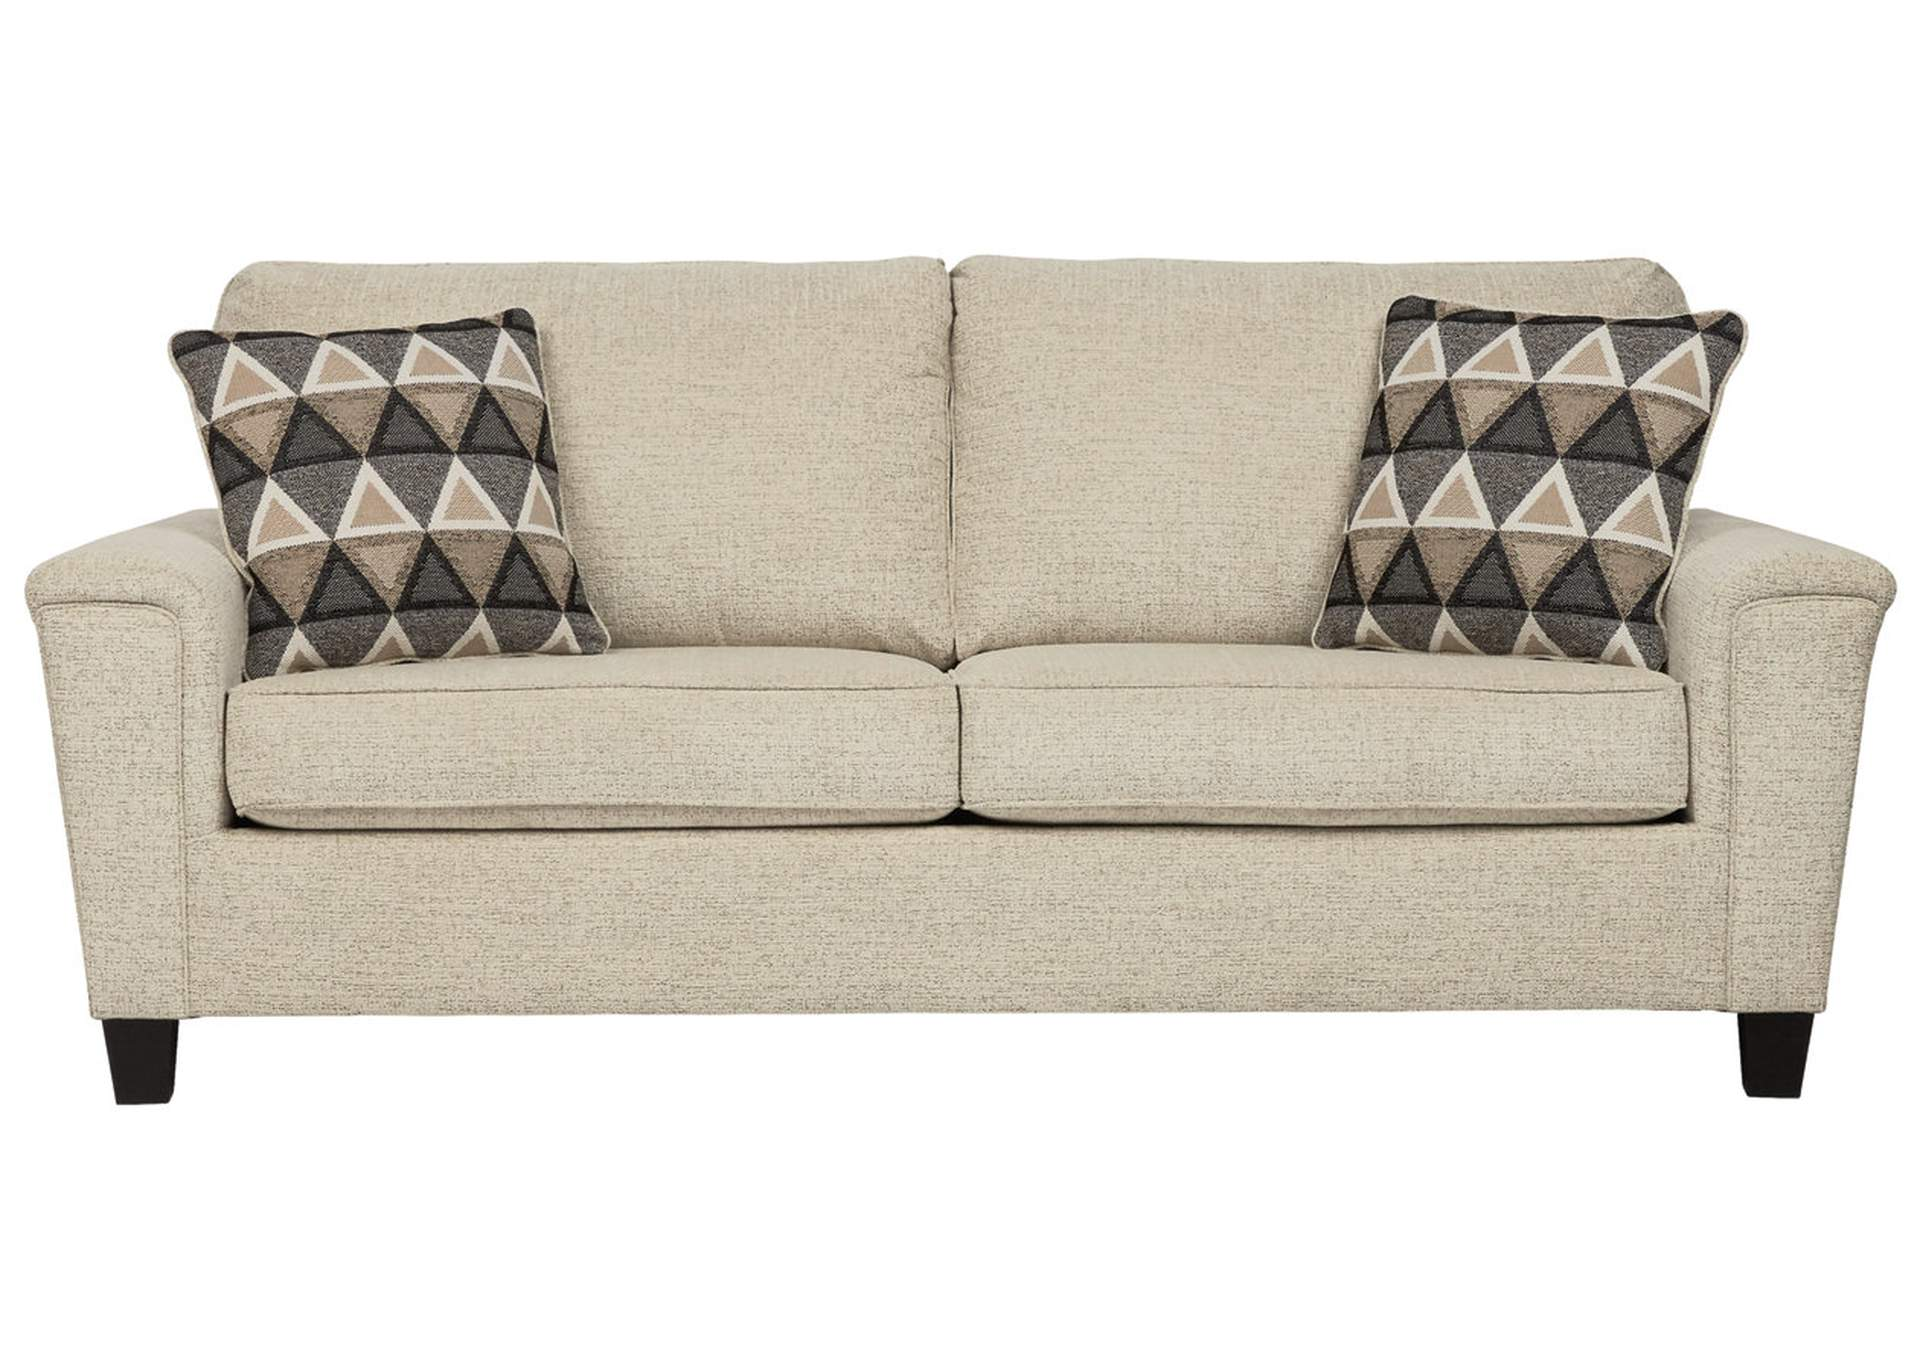 Abinger Natural Sofa,Signature Design By Ashley